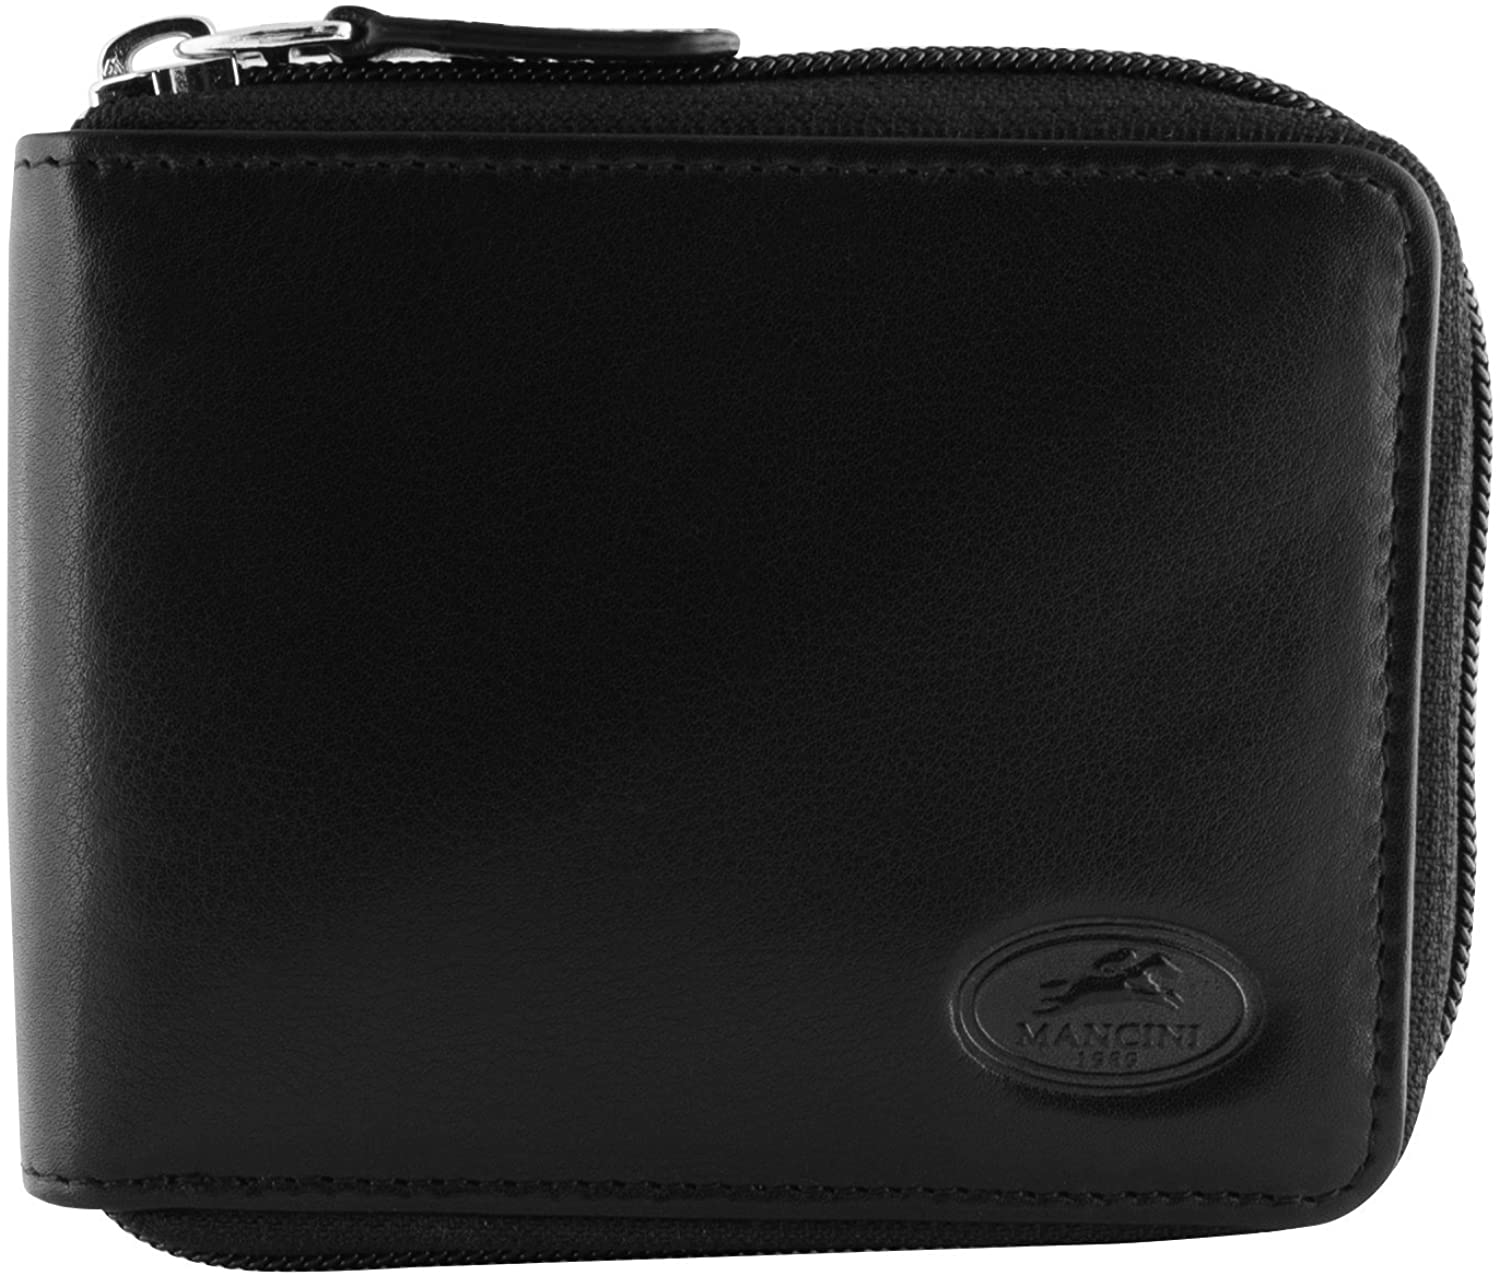 Mancini RFID Secure Men's Zippered Leather Wallet